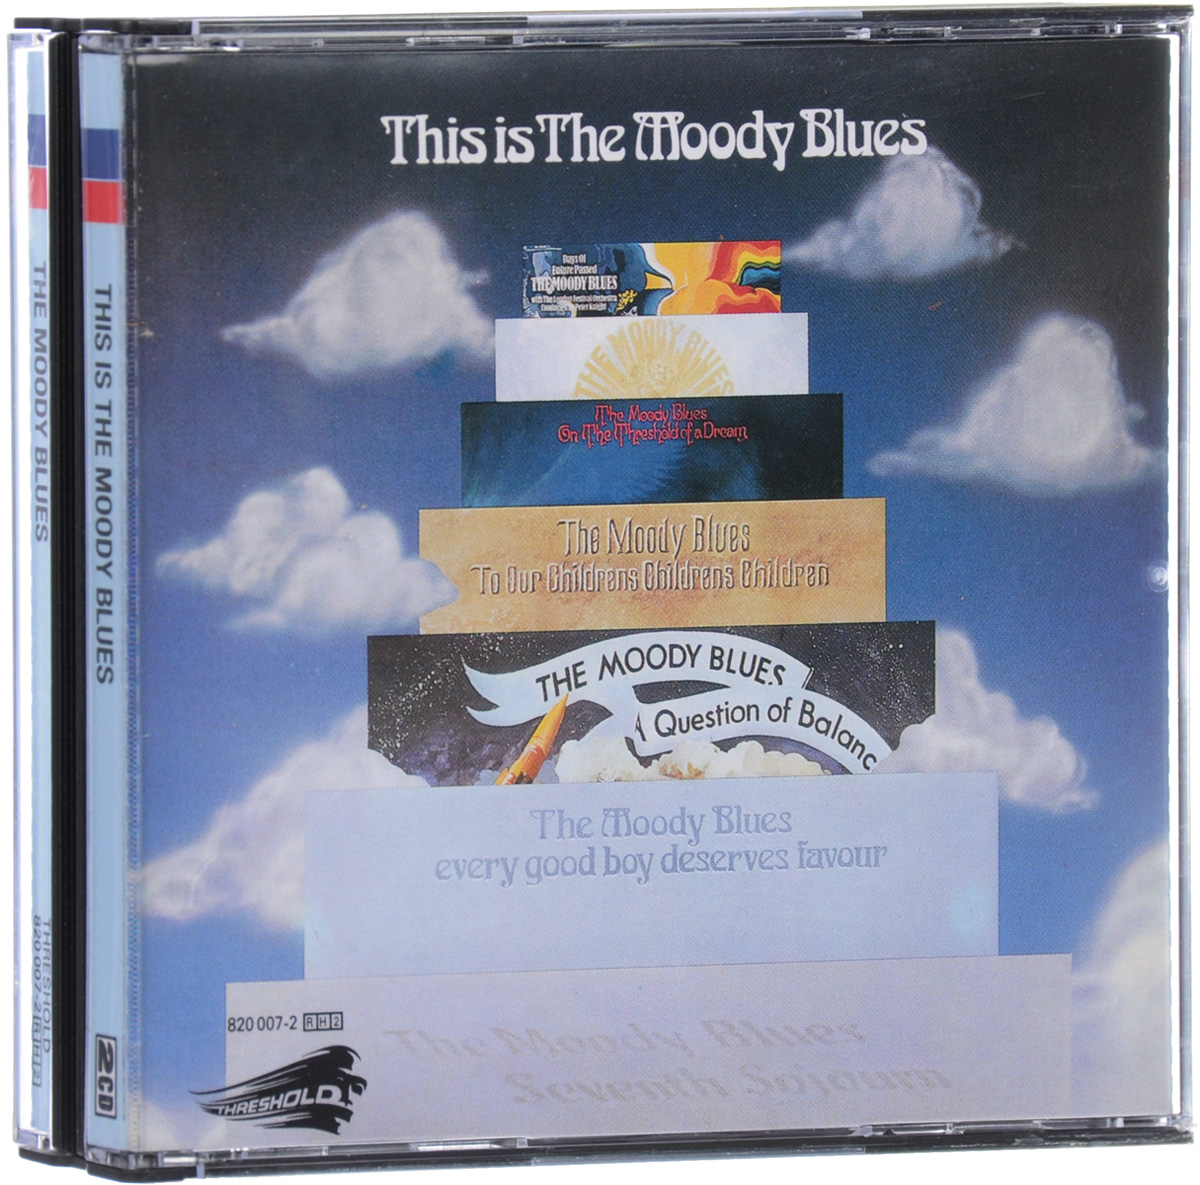 The Moody Blues The Moody Blues This Is The Moody Blues 2 CD